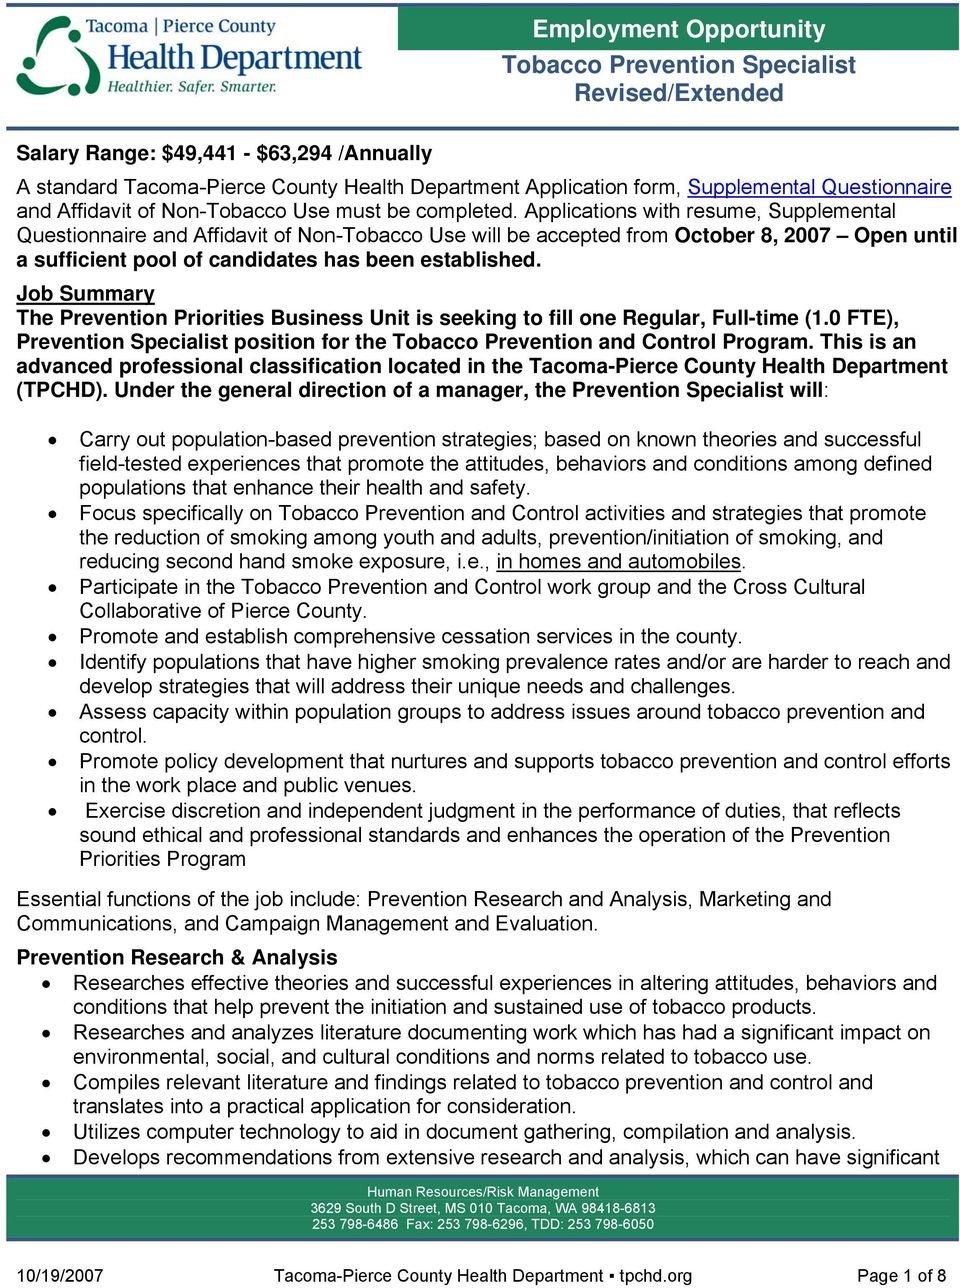 Job Summary The Prevention Priorities Business Unit is seeking to fill one Regular, Full-time (1.0 FTE), Prevention Specialist position for the Tobacco Prevention and Control Program.